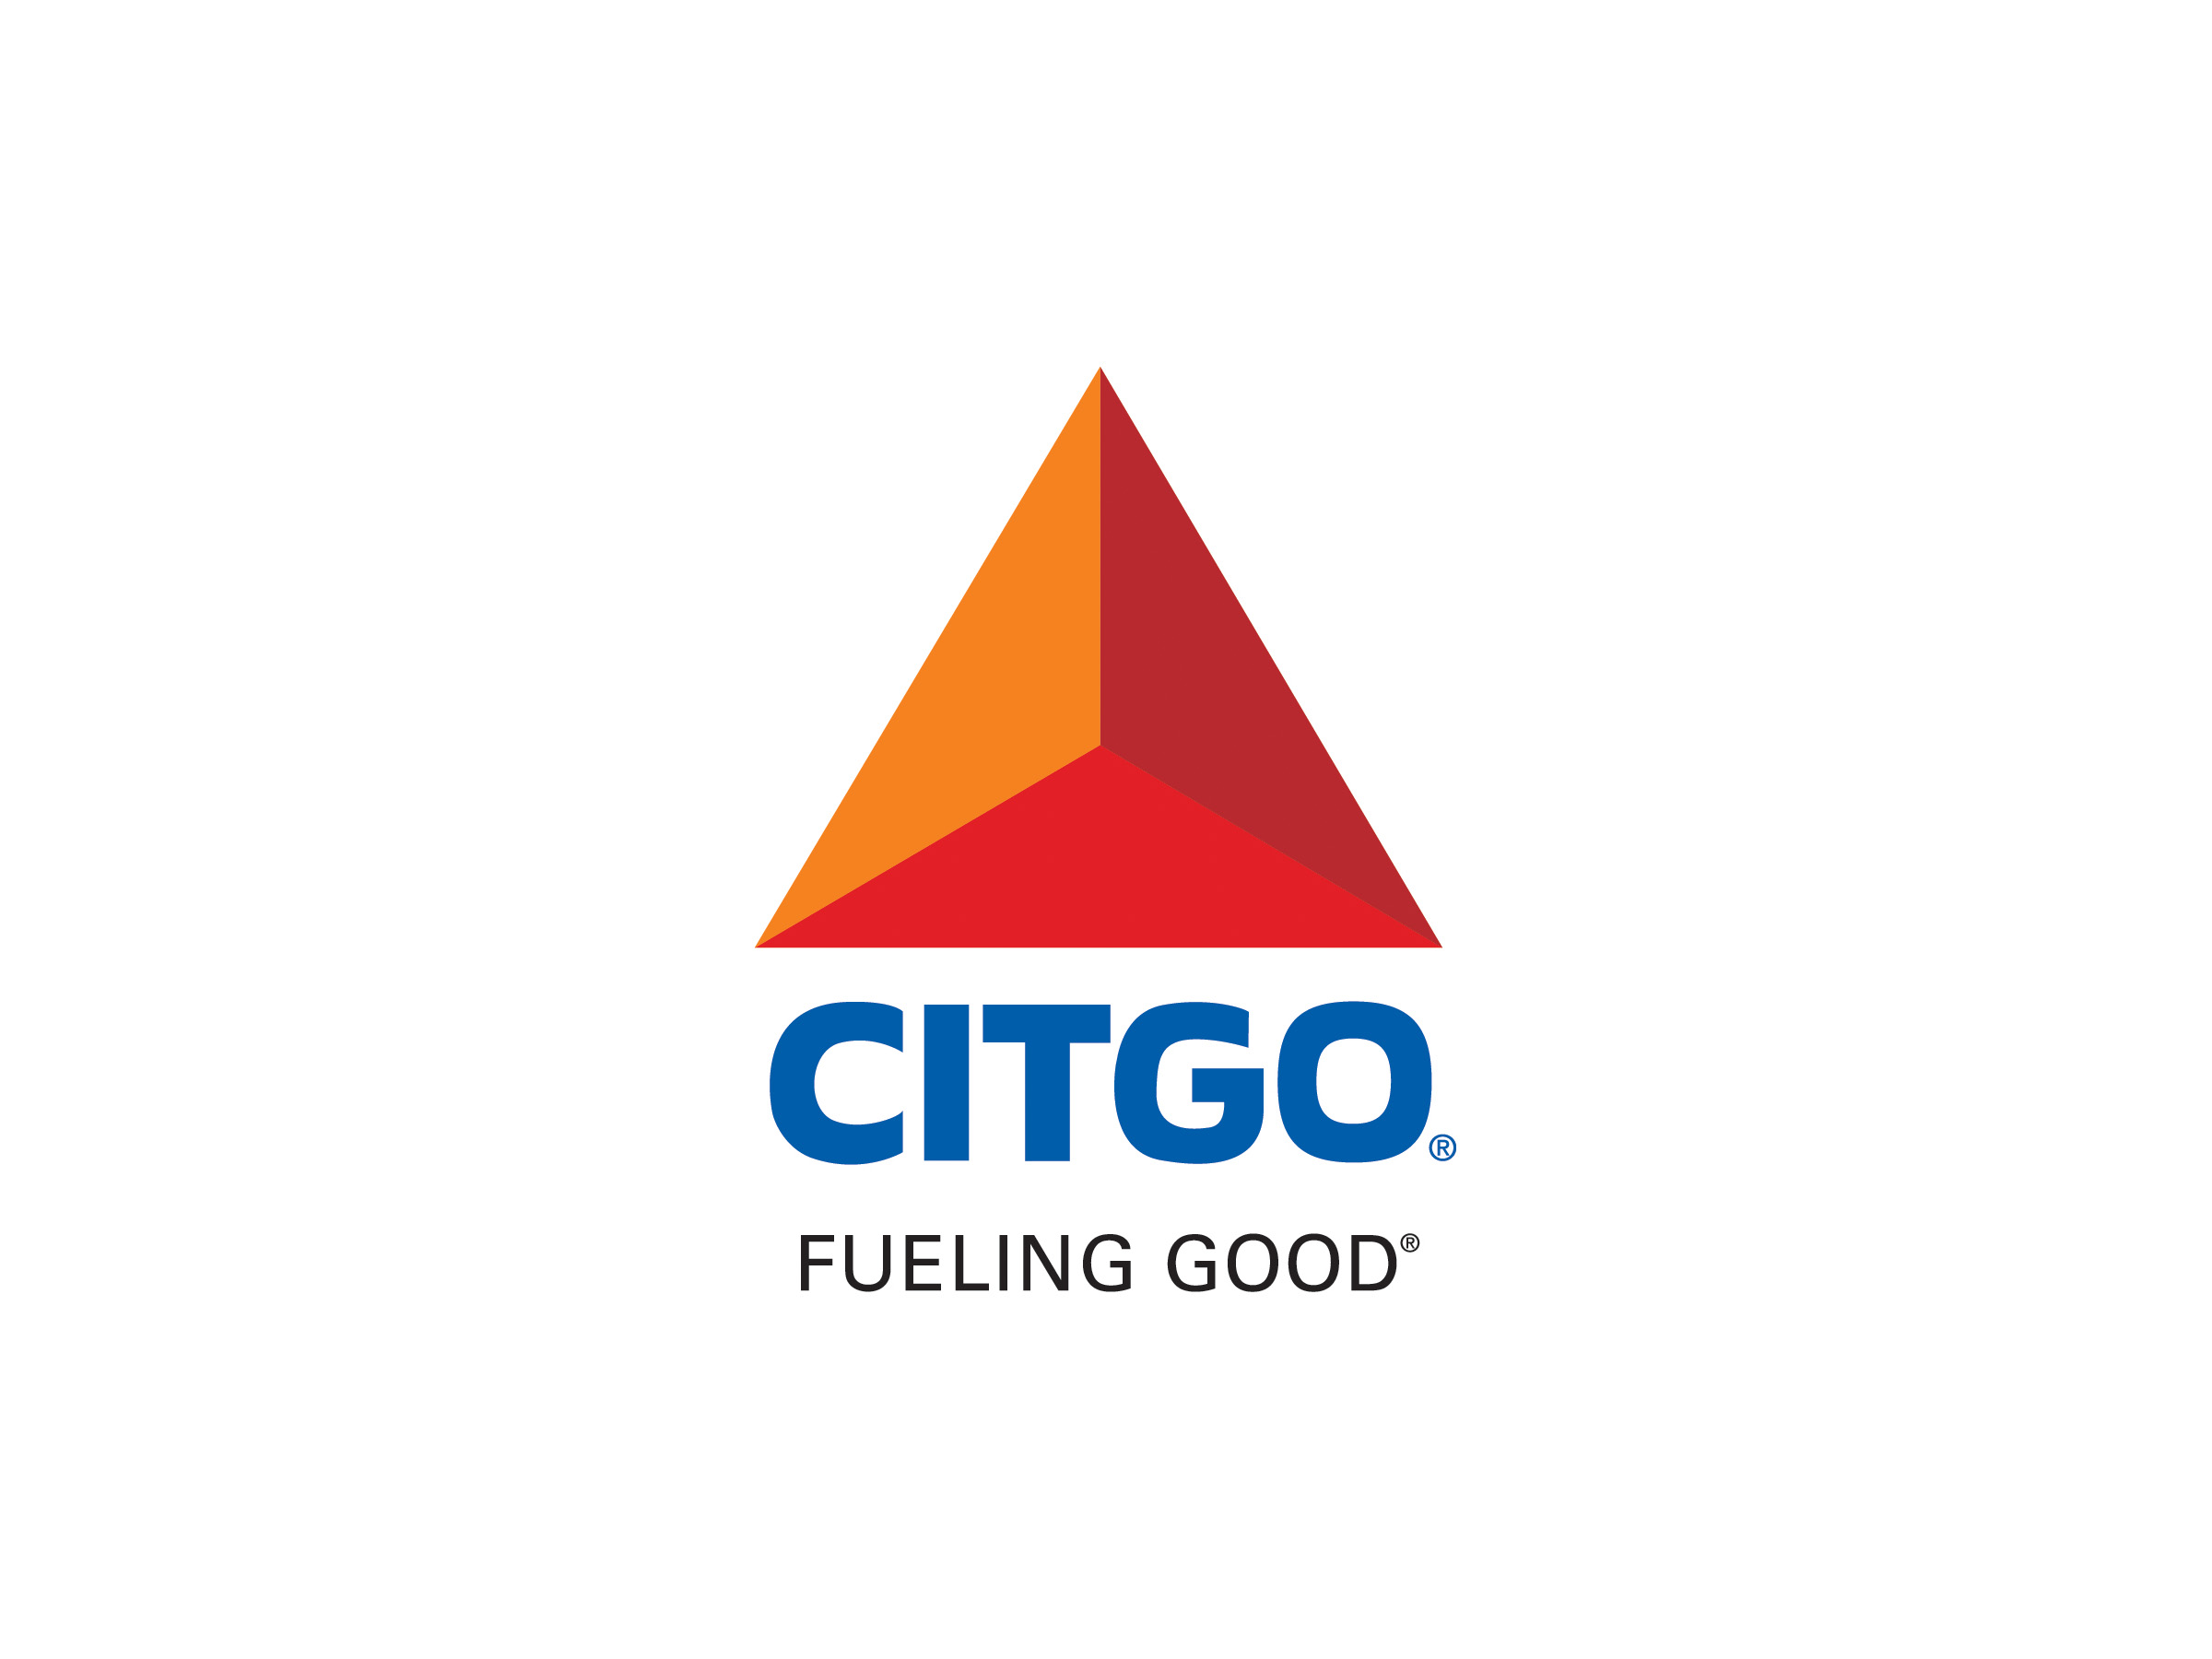 In doubling the amount of participating schools, ambassadors and volunteers for this year's campaign, CITGO continues to fuel education and teach them about the importance of literacy & education.